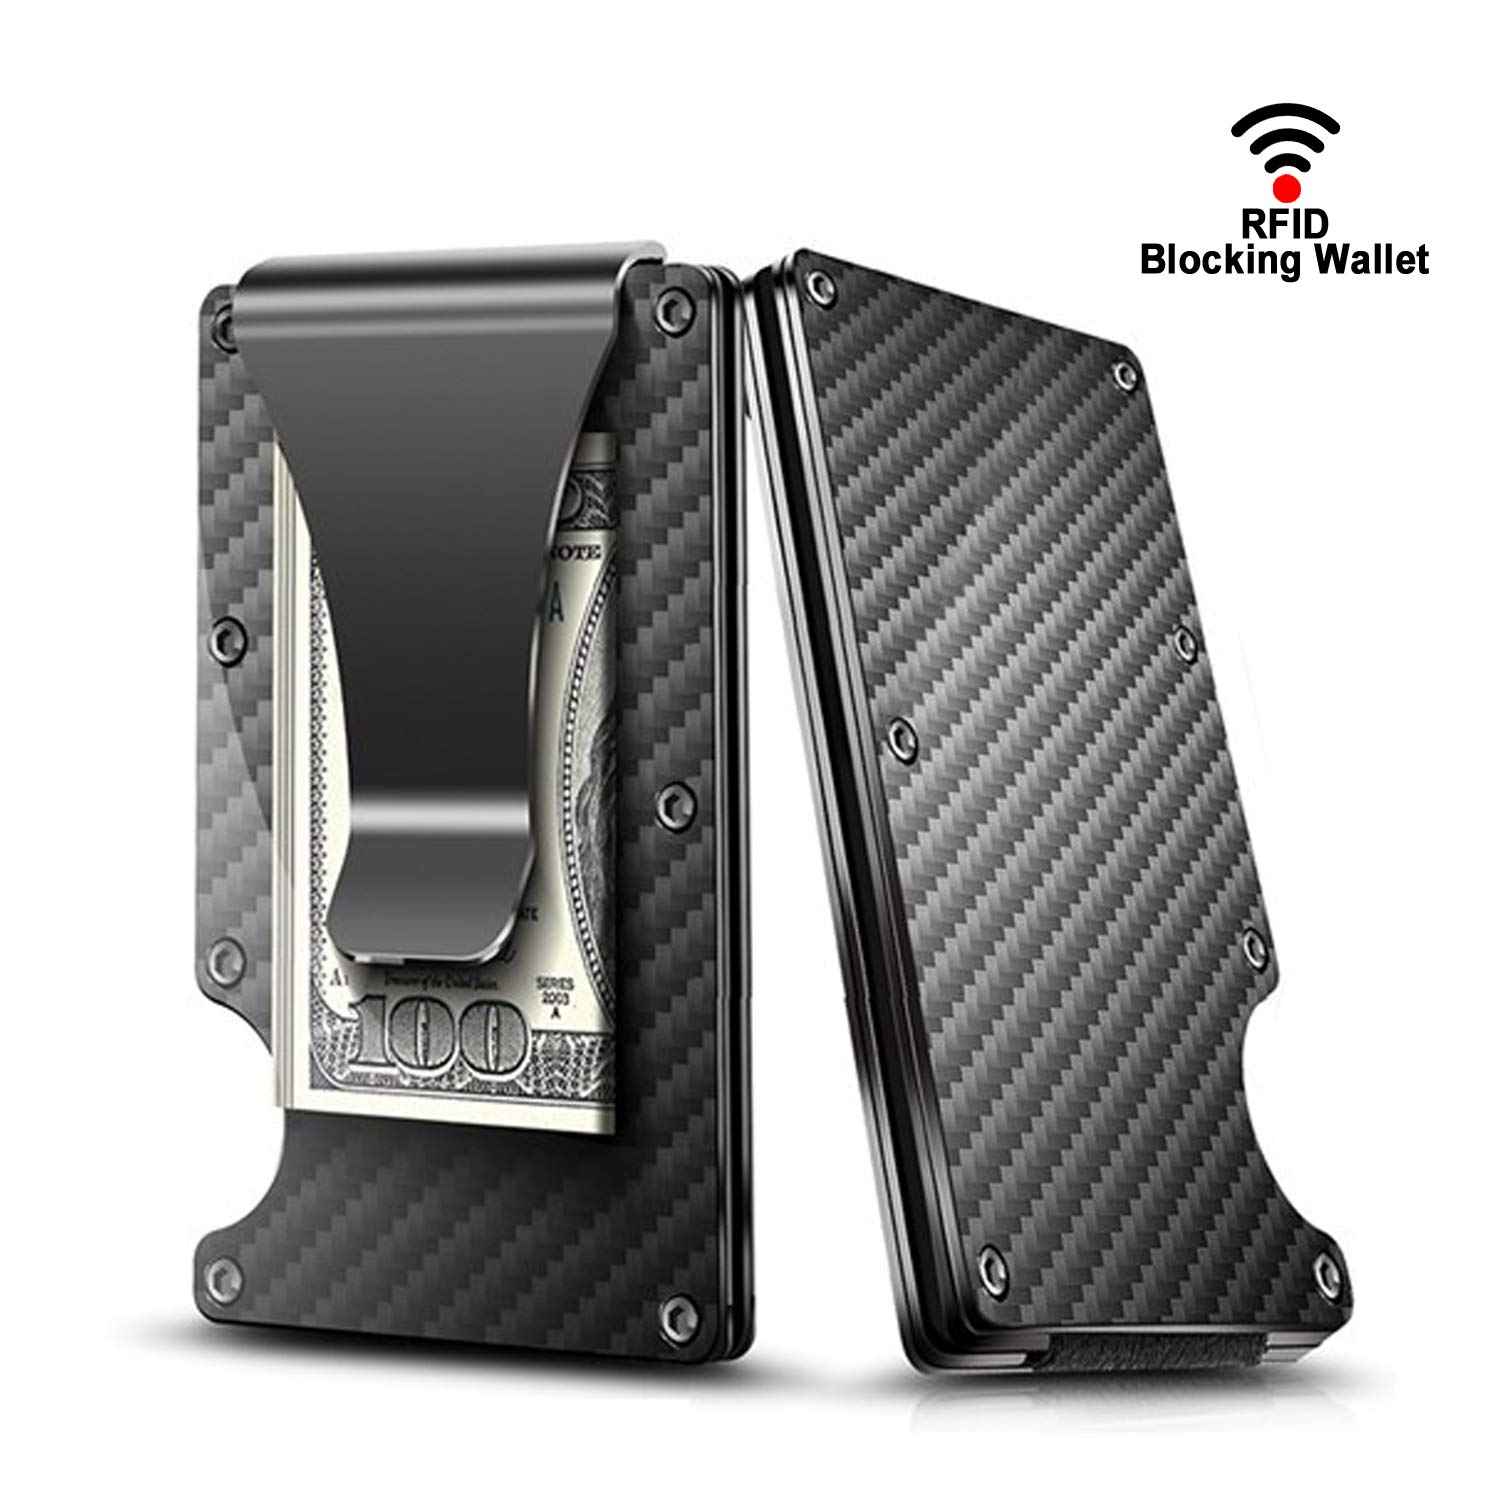 Carbon fiber wallet, Minimalist money clip, Card wallet RFID blocking, bussiness card case wallet for men GKG-Card Case